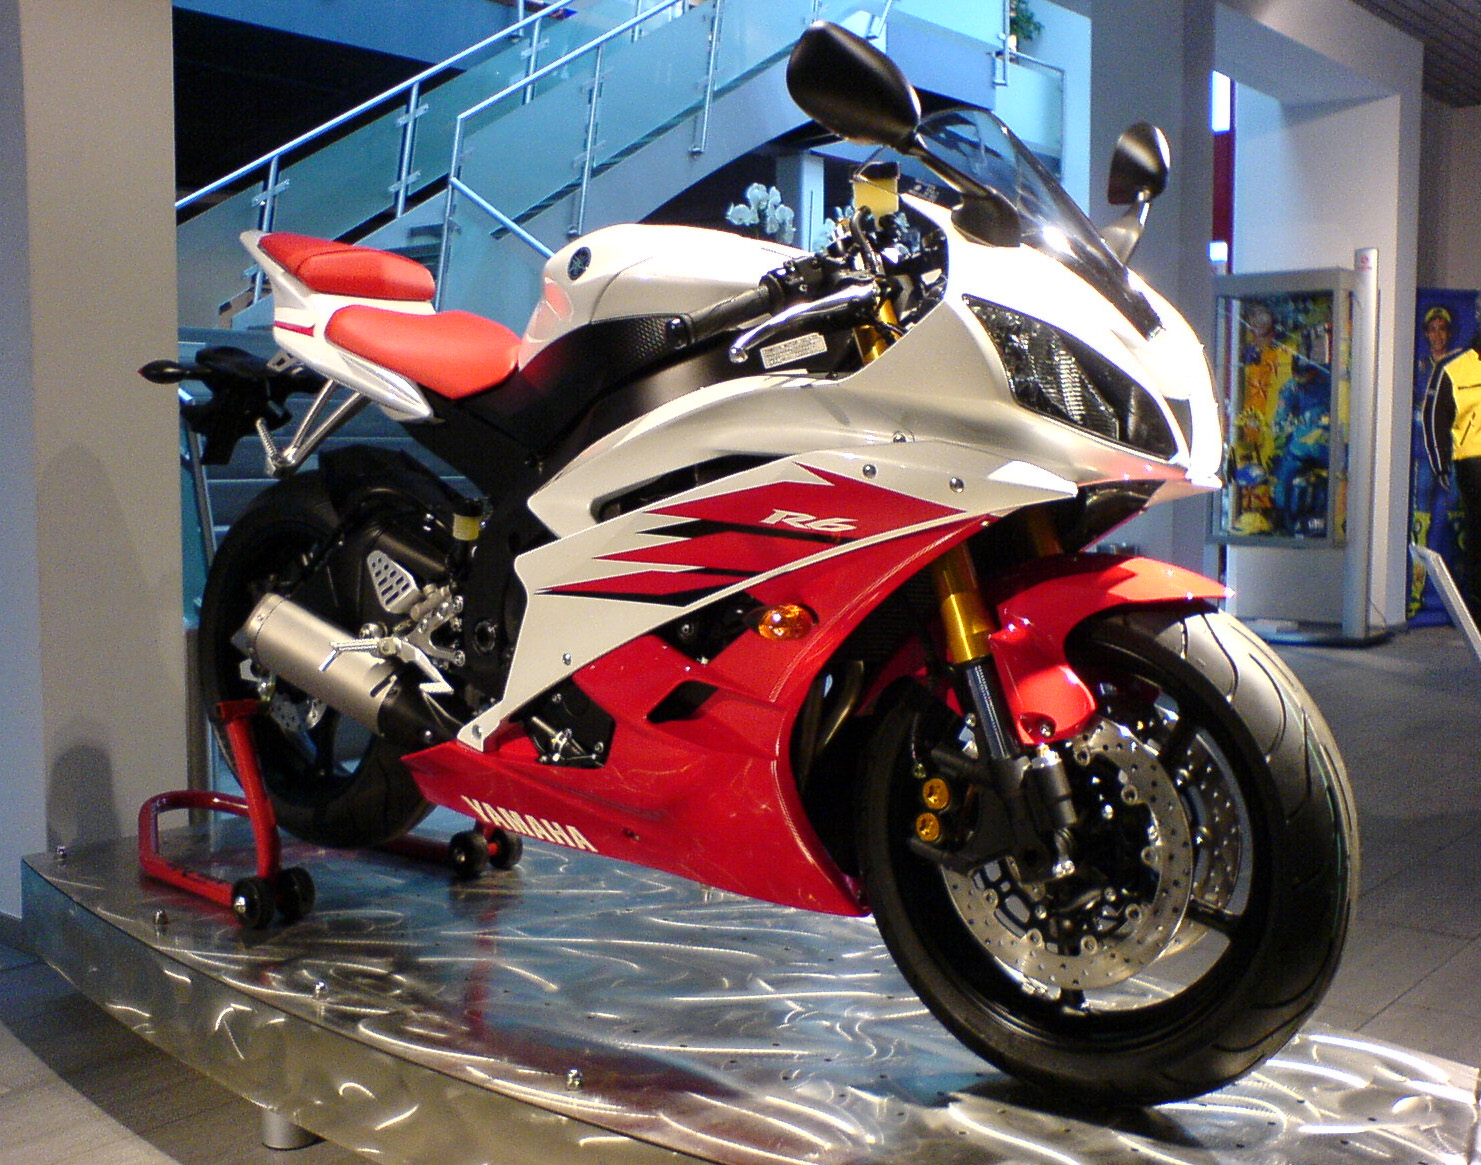 Yamaha yzf-r6 photo - 1